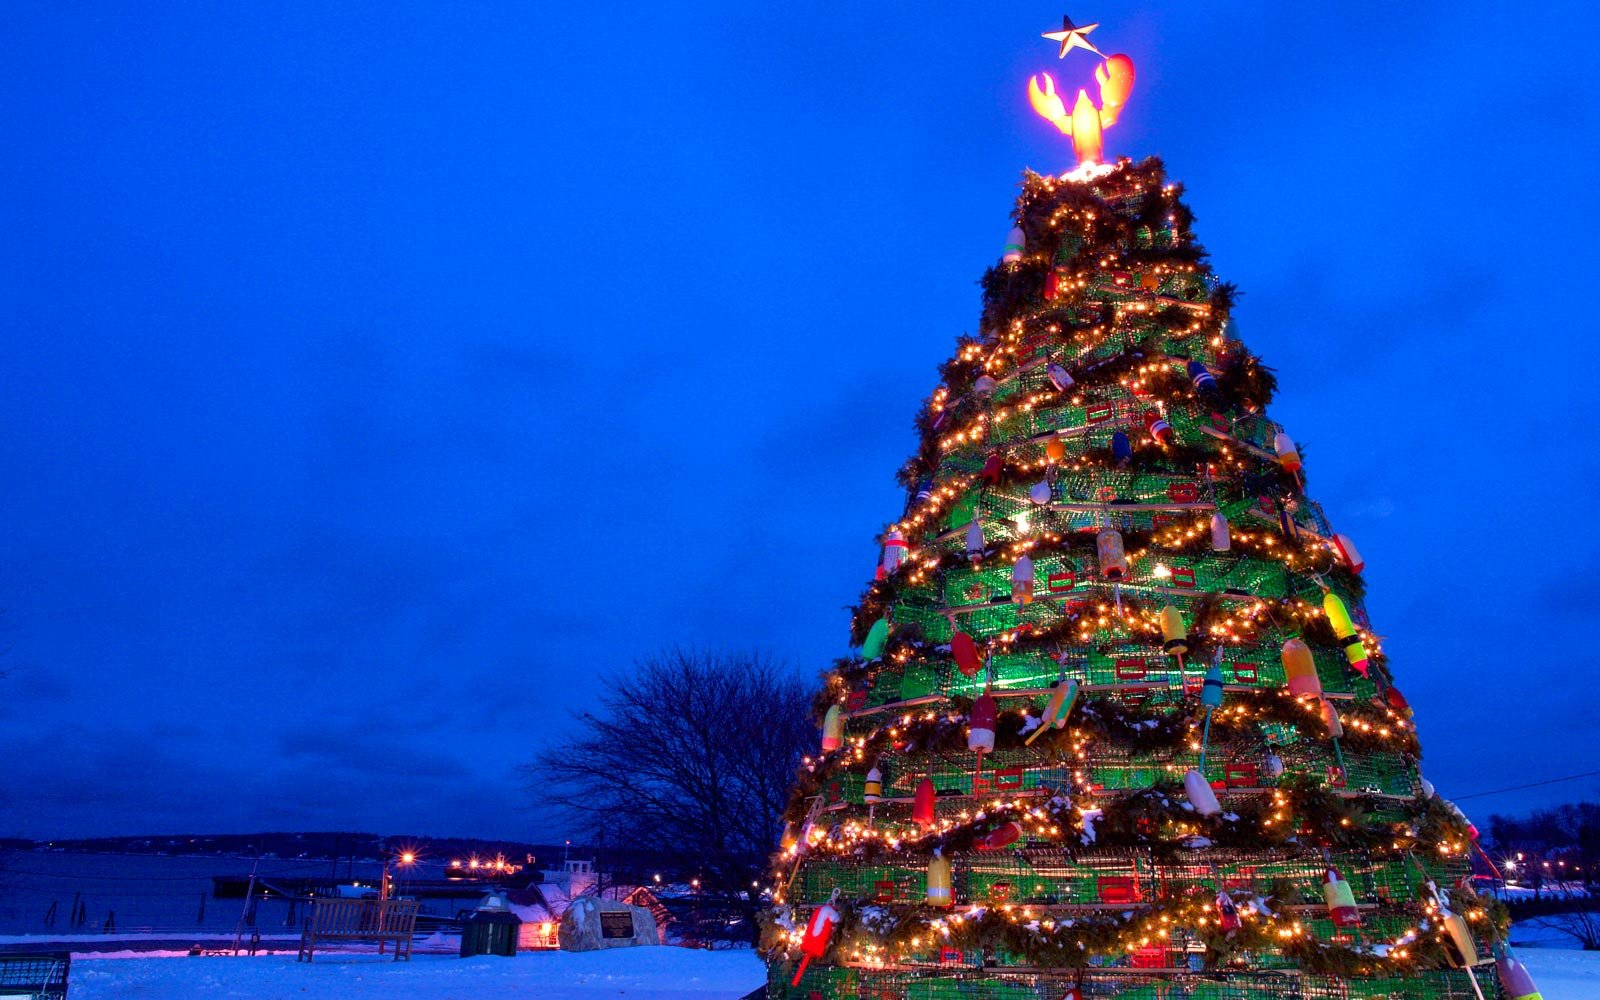 The Wackiest Christmas Trees in the World